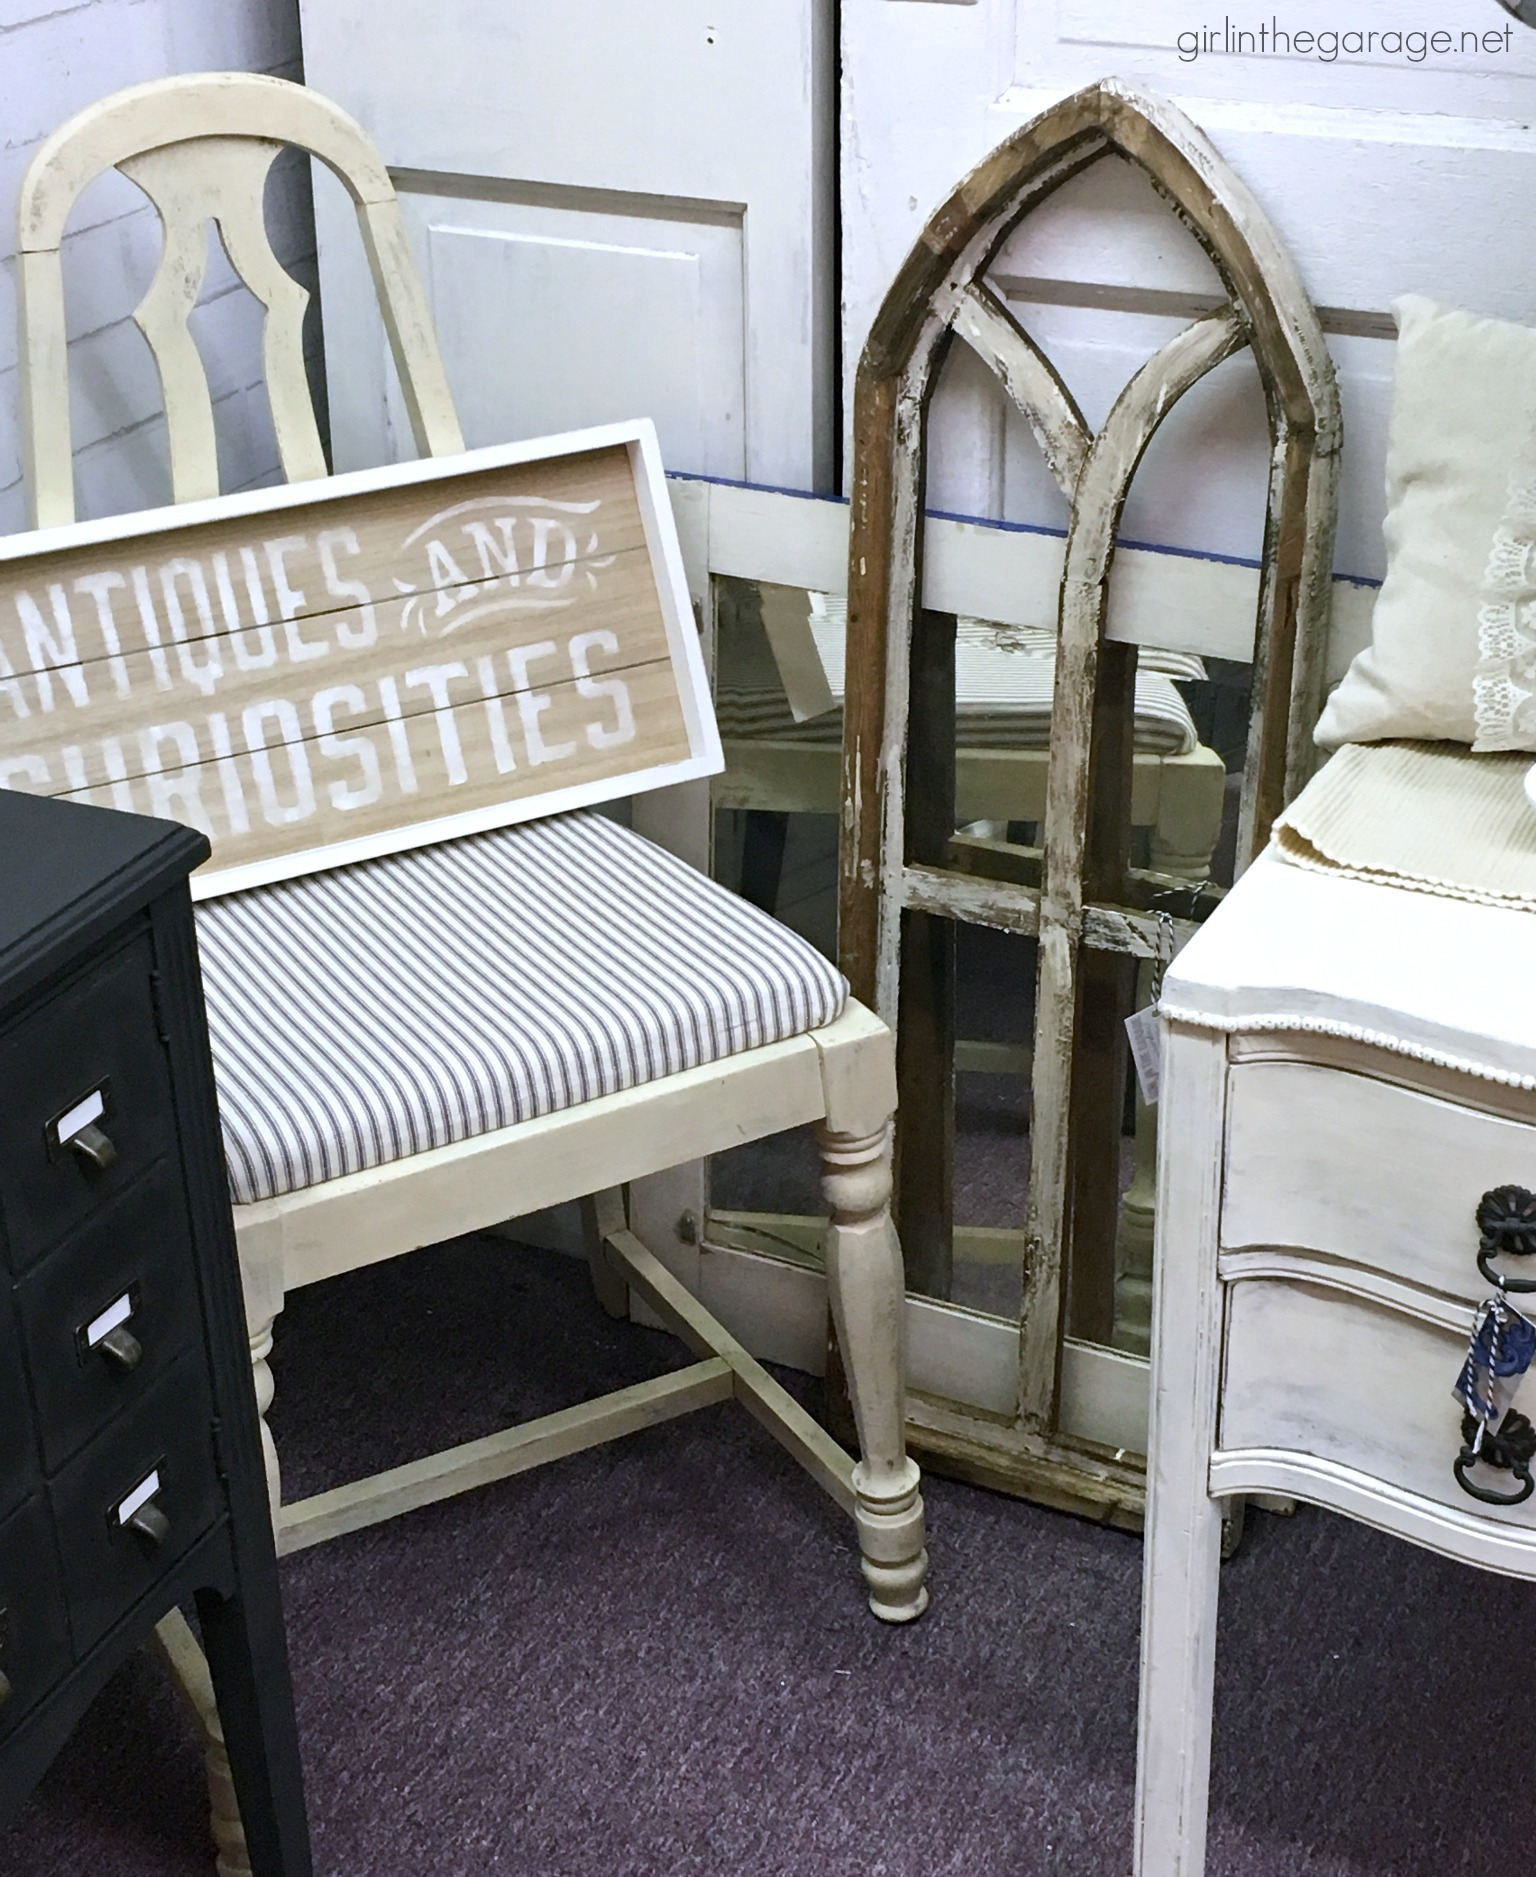 How to Sell Antique Furniture Luxury 7 Mistakes I Made when Starting My Antique Booth Girl In